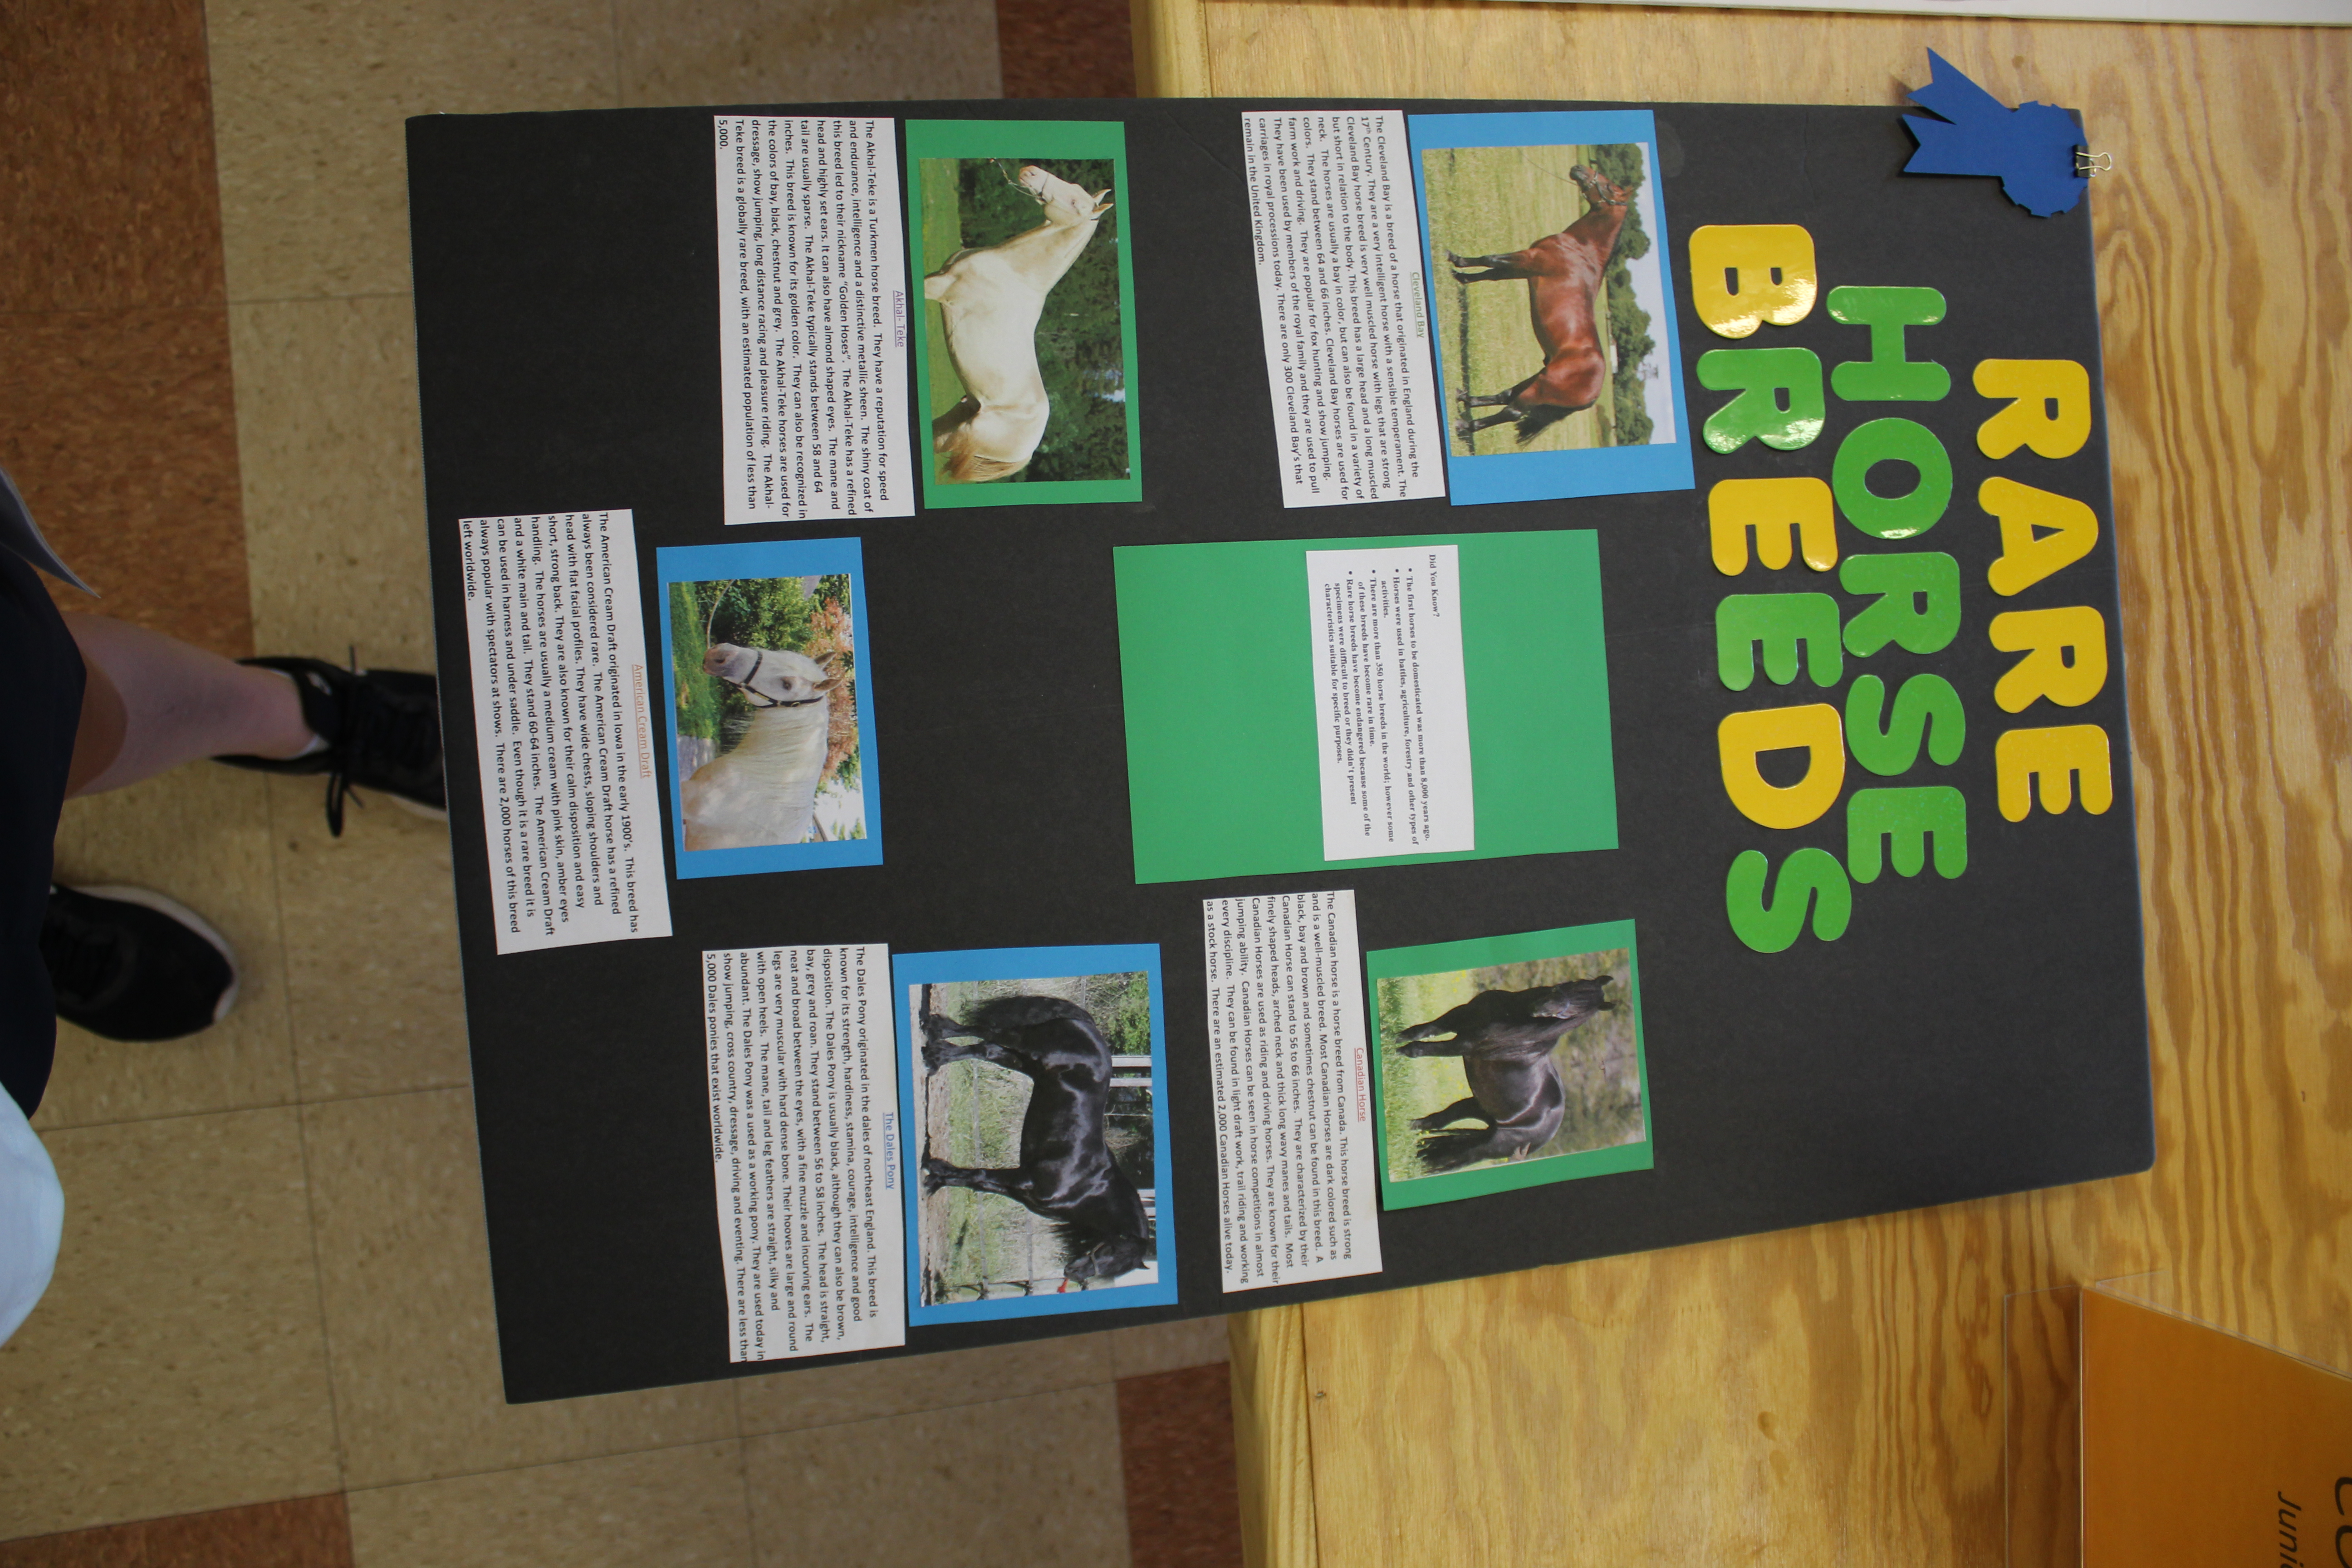 Rare horse breed poster project